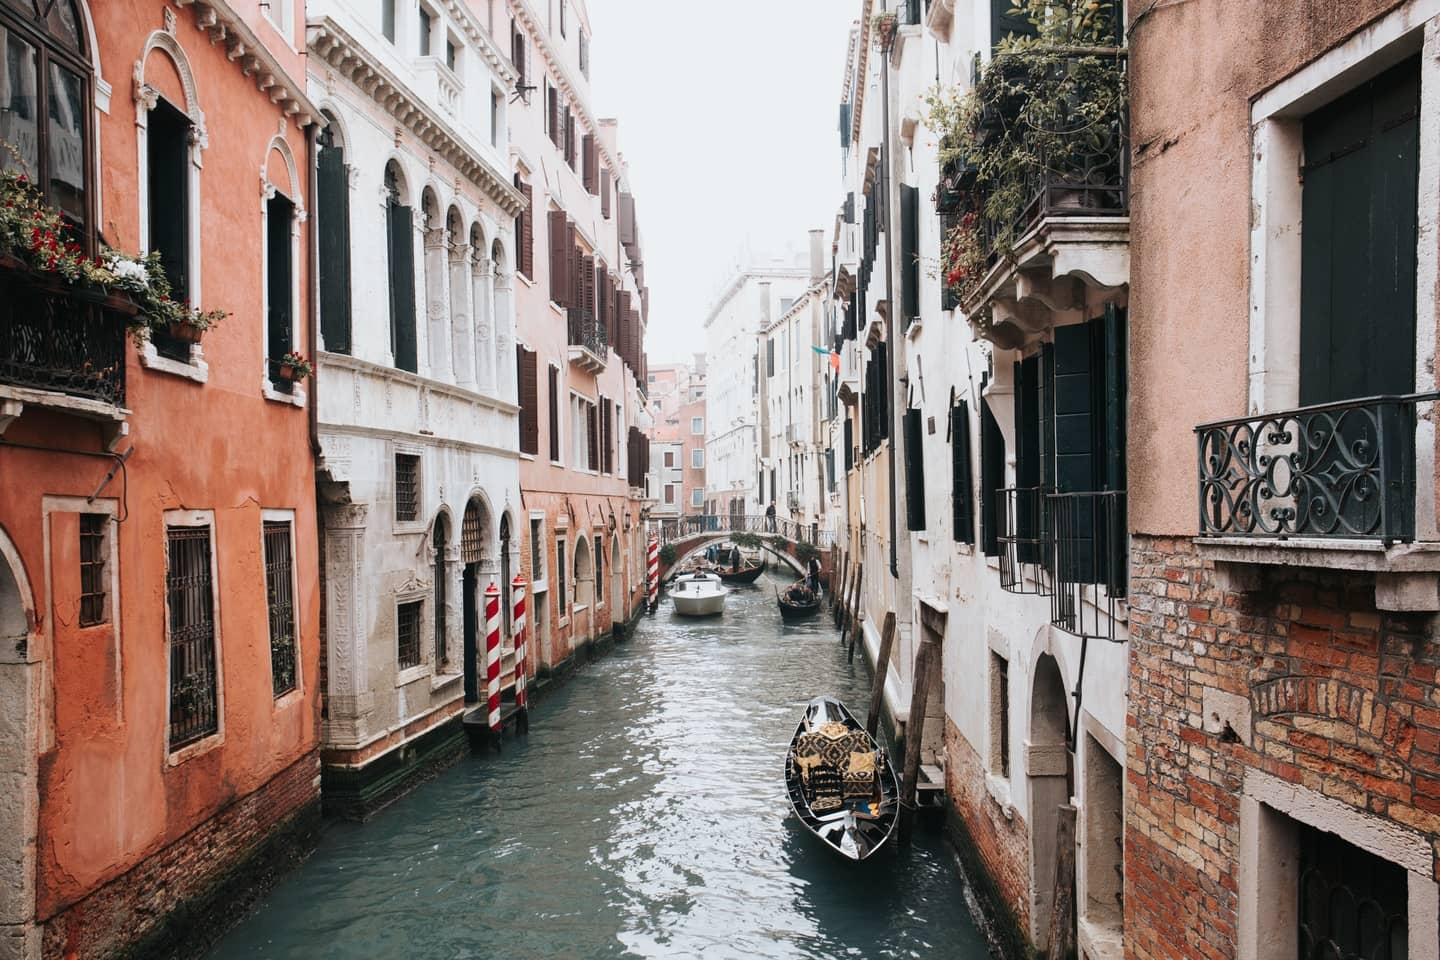 grand canal is the revolution of logistics by water